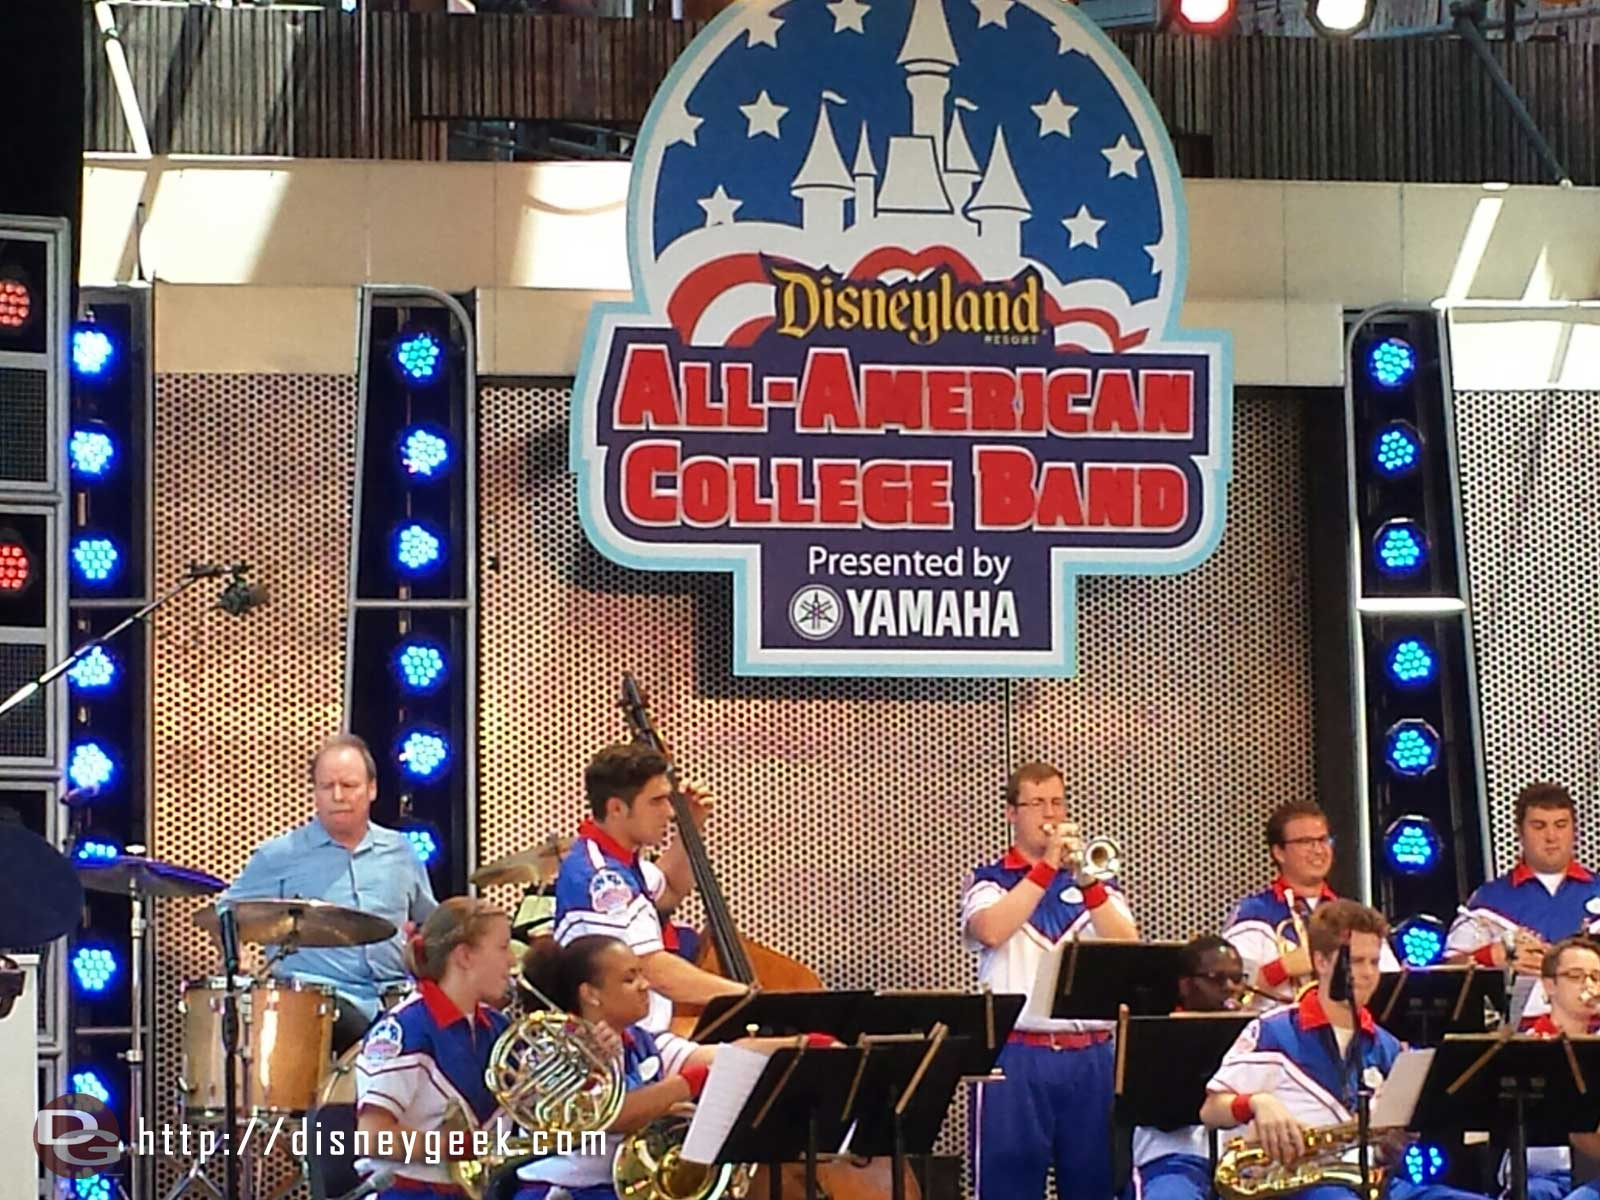 Today Steve Houghton is performing with the All-American College Band